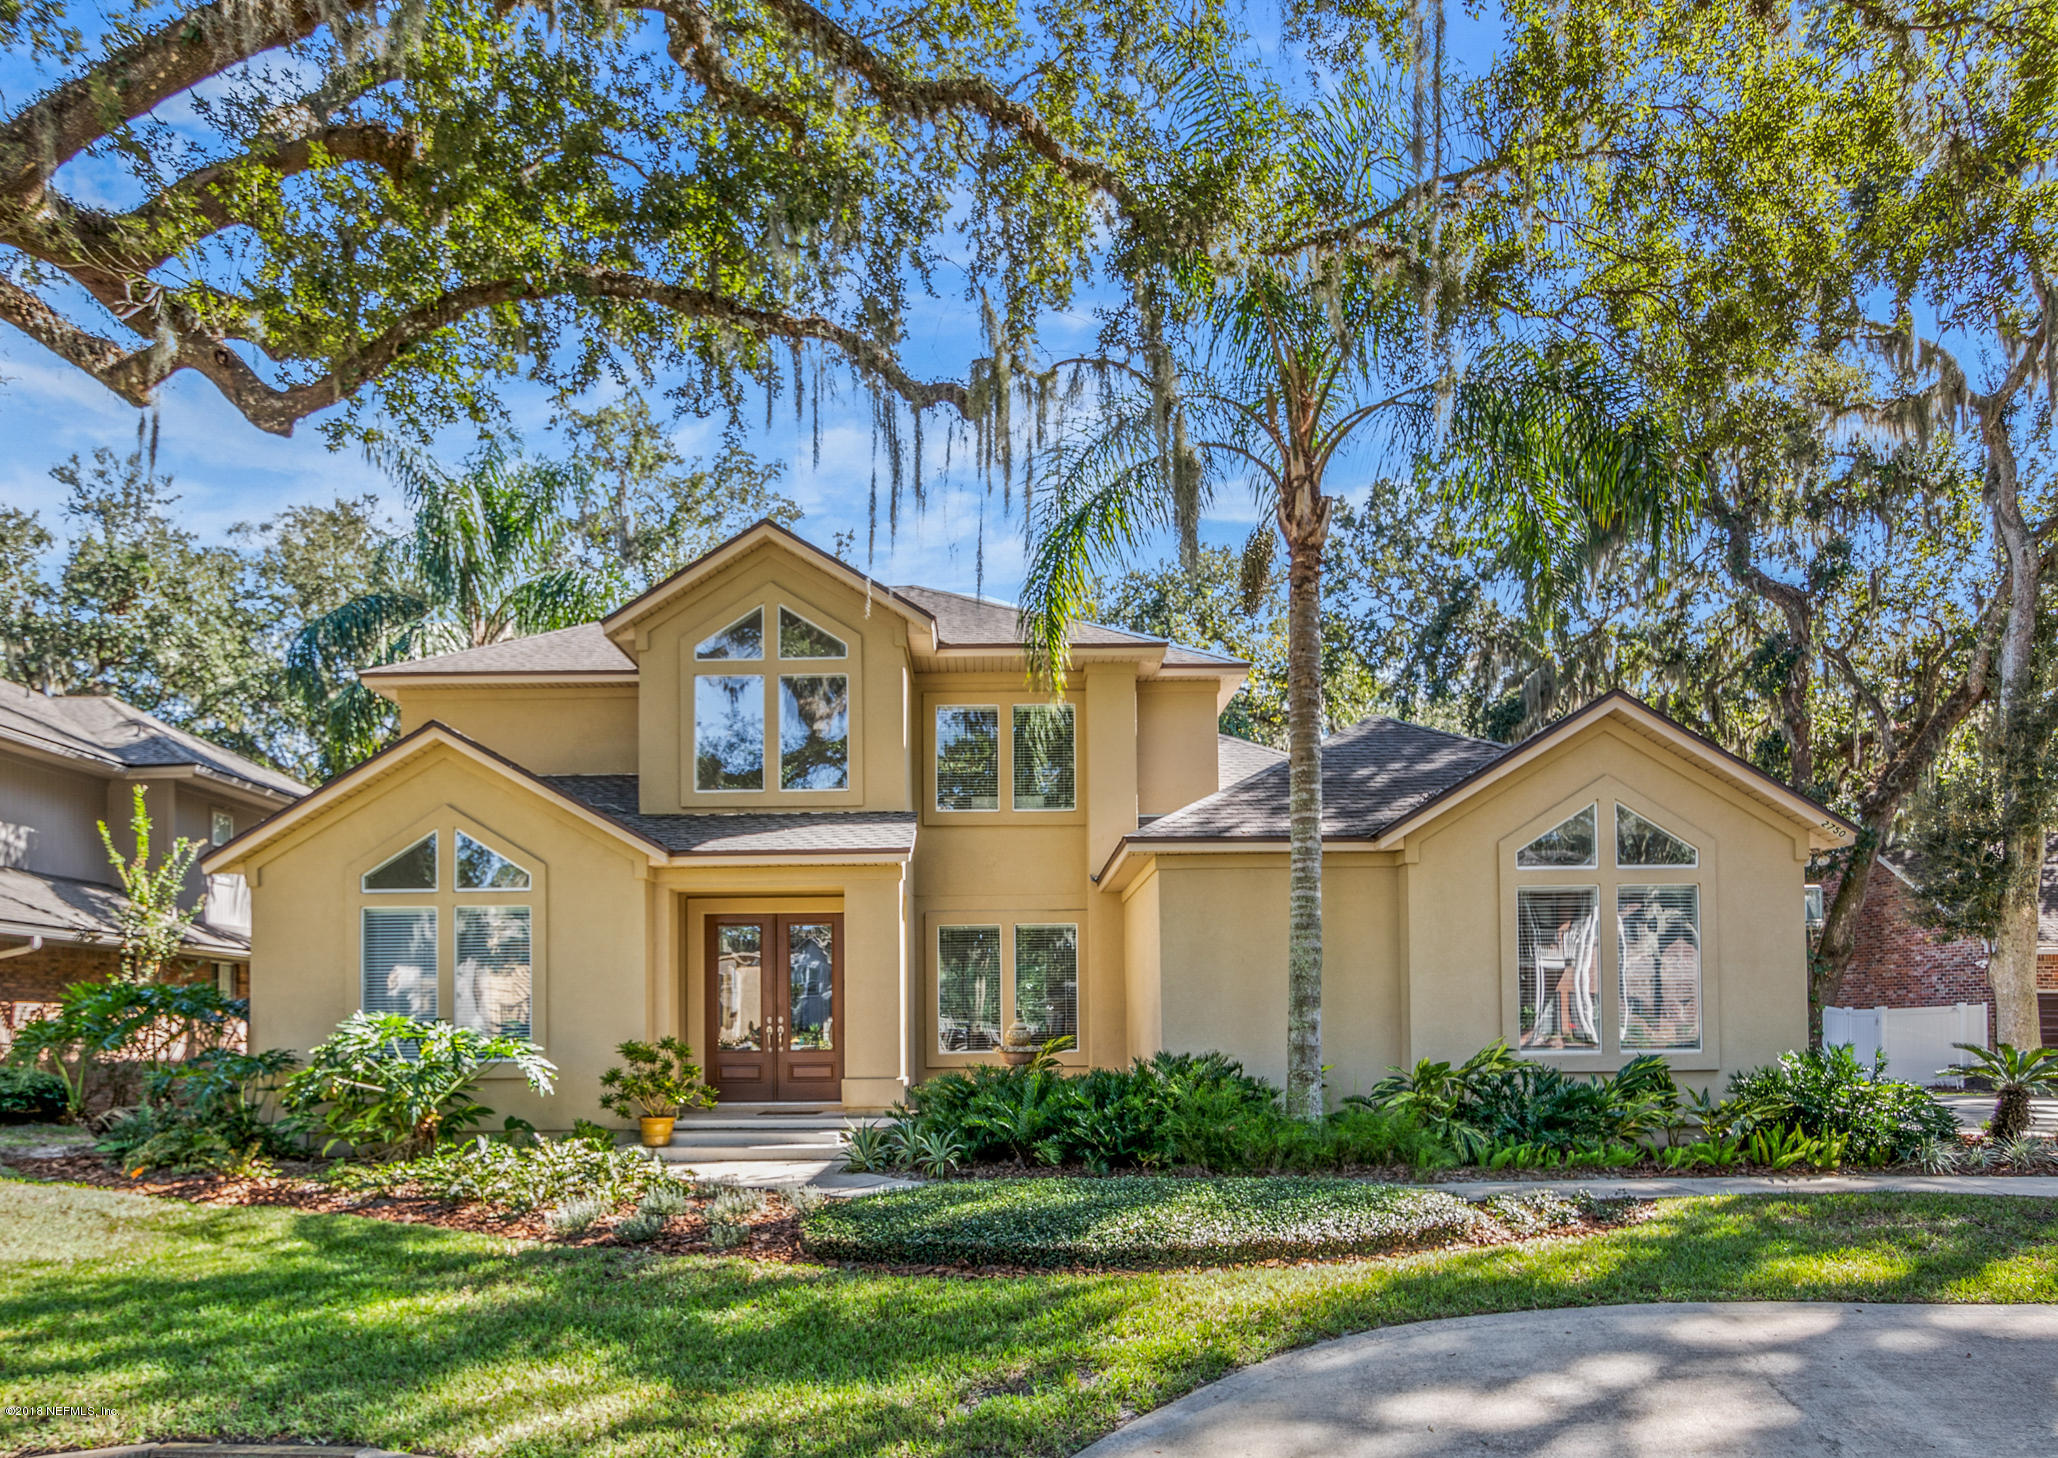 2750 ESTATES, JACKSONVILLE, FLORIDA 32257, 4 Bedrooms Bedrooms, ,3 BathroomsBathrooms,Residential - single family,For sale,ESTATES,965217